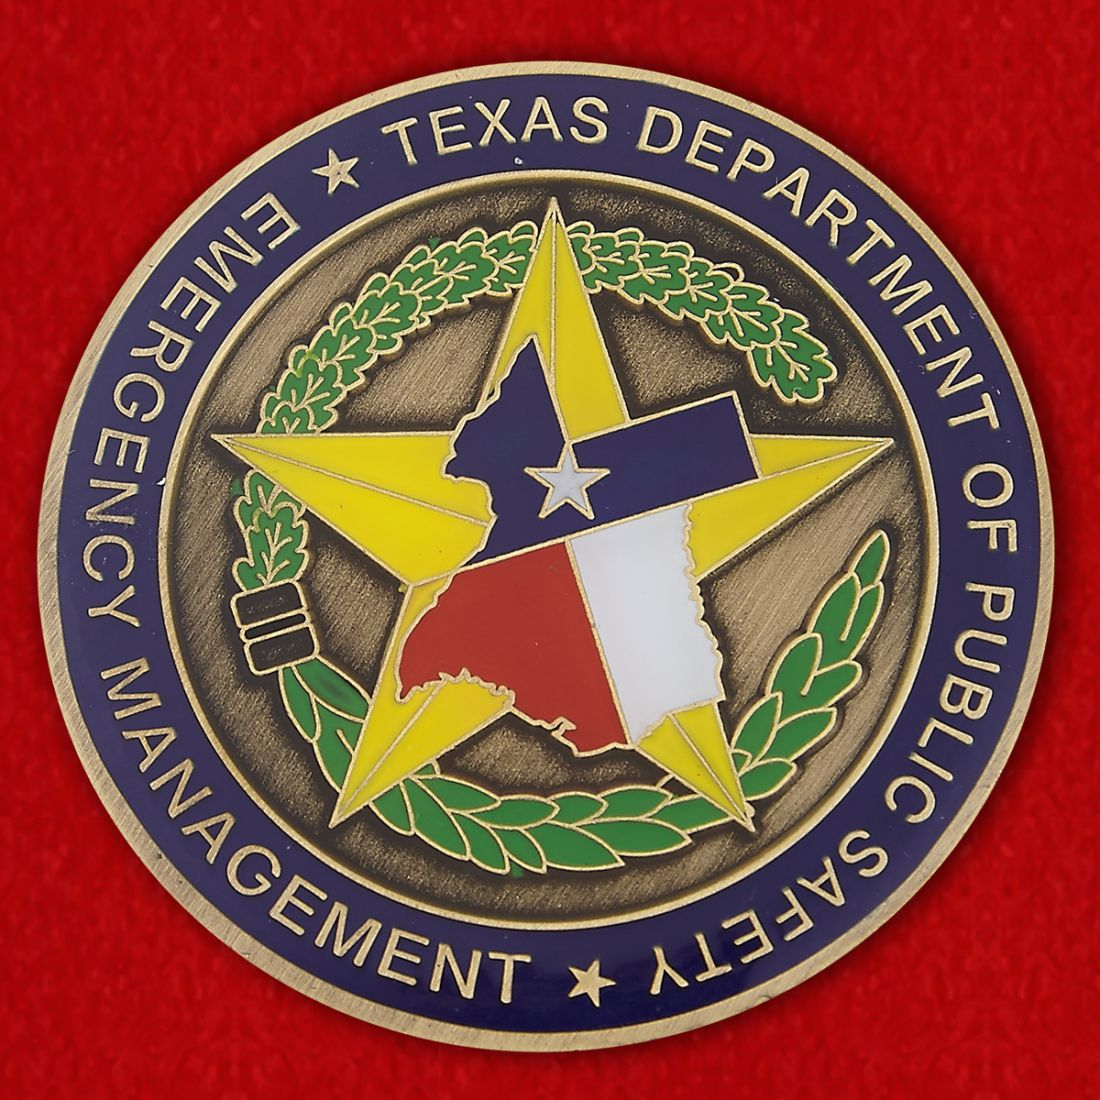 Texas Department of Public Safetty Challenge Coin